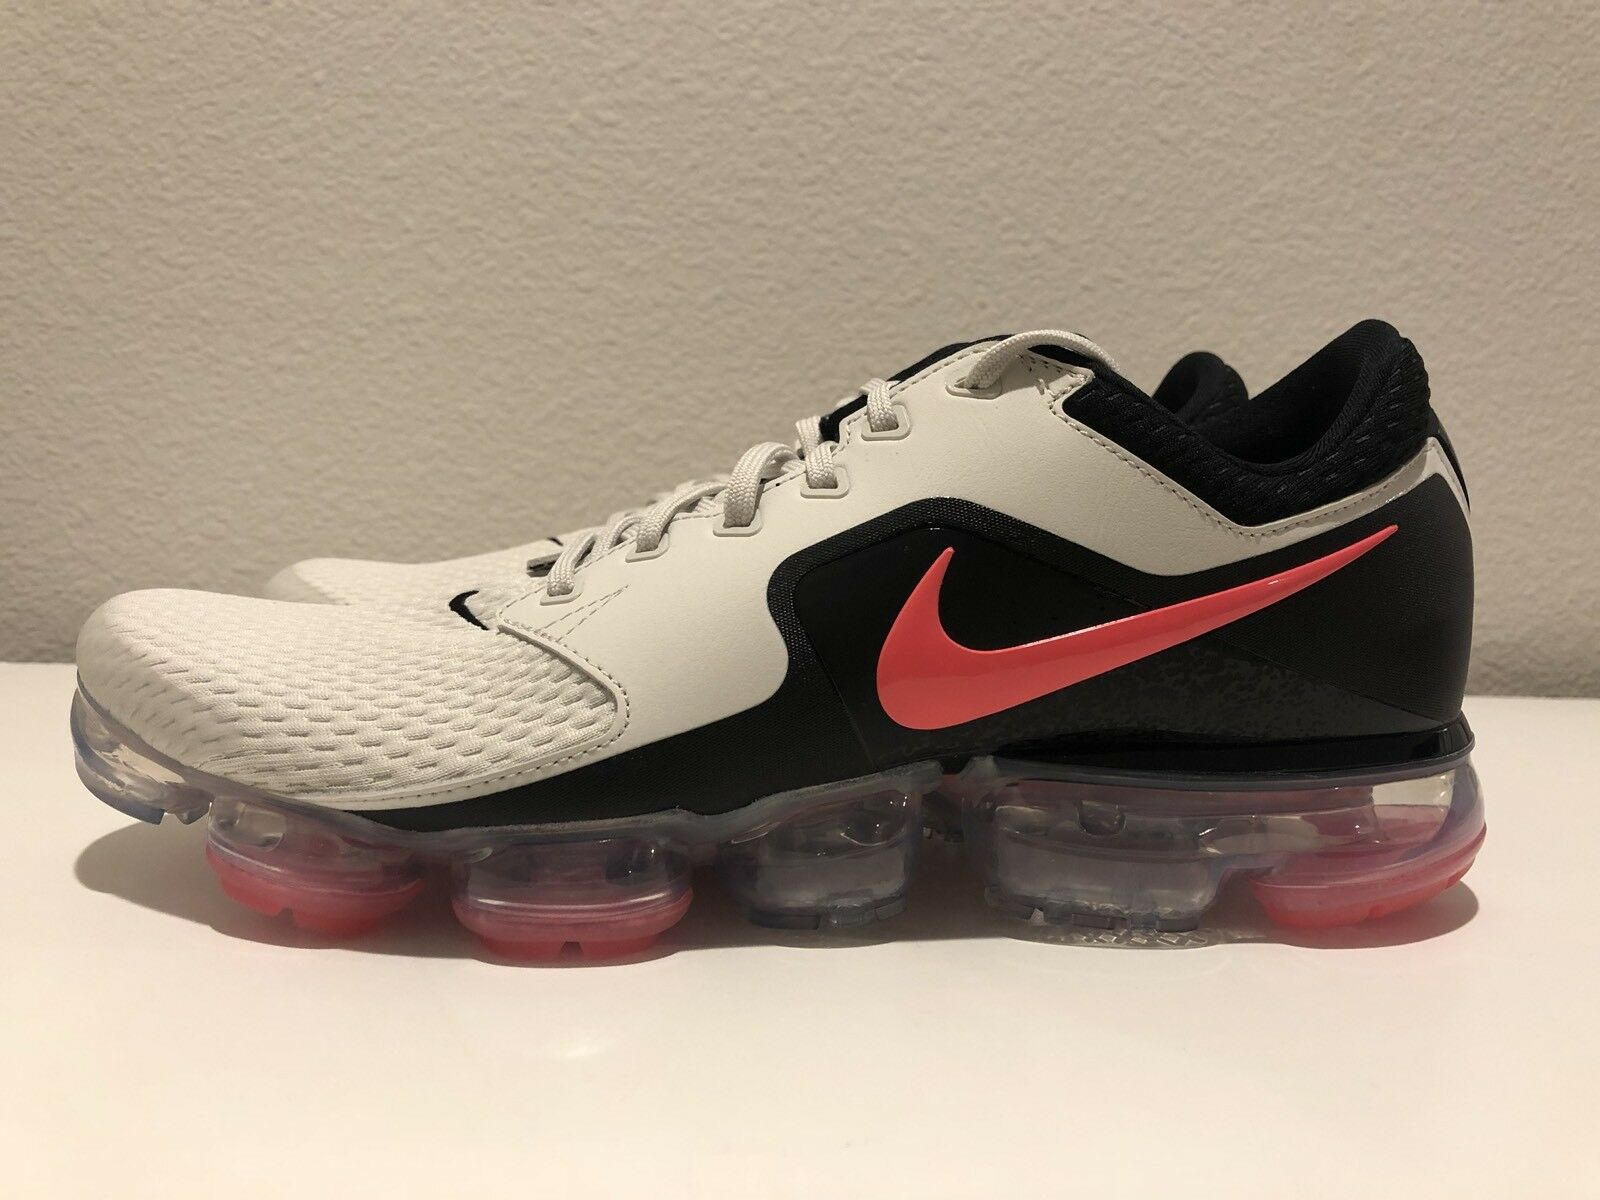 Nike Air VaporMax Running Price reduction Cheap women's shoes women's shoes